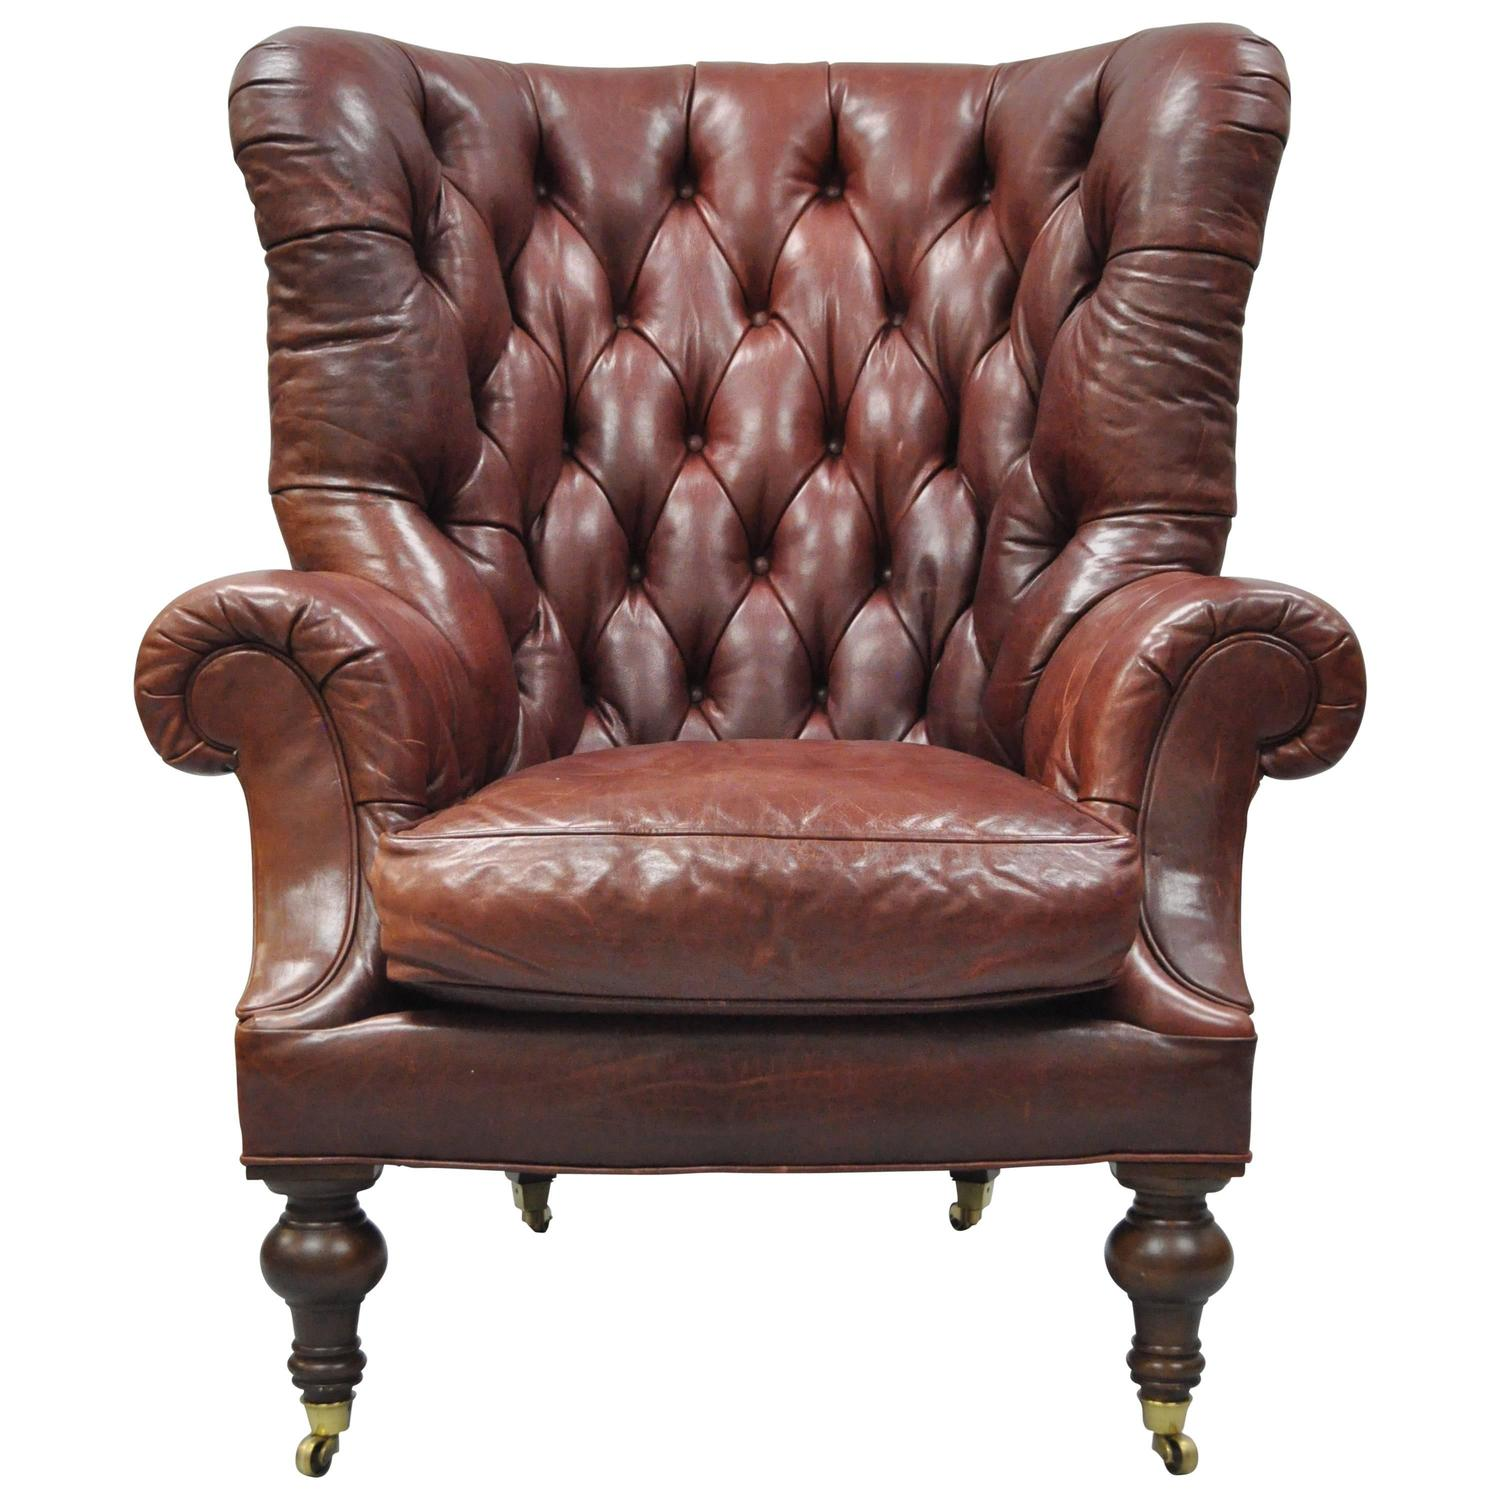 Oversized Lillian August Brown Tufted Leather English Chesterfield Wing  Chair For Sale at 1stdibs - Oversized Lillian August Brown Tufted Leather English Chesterfield